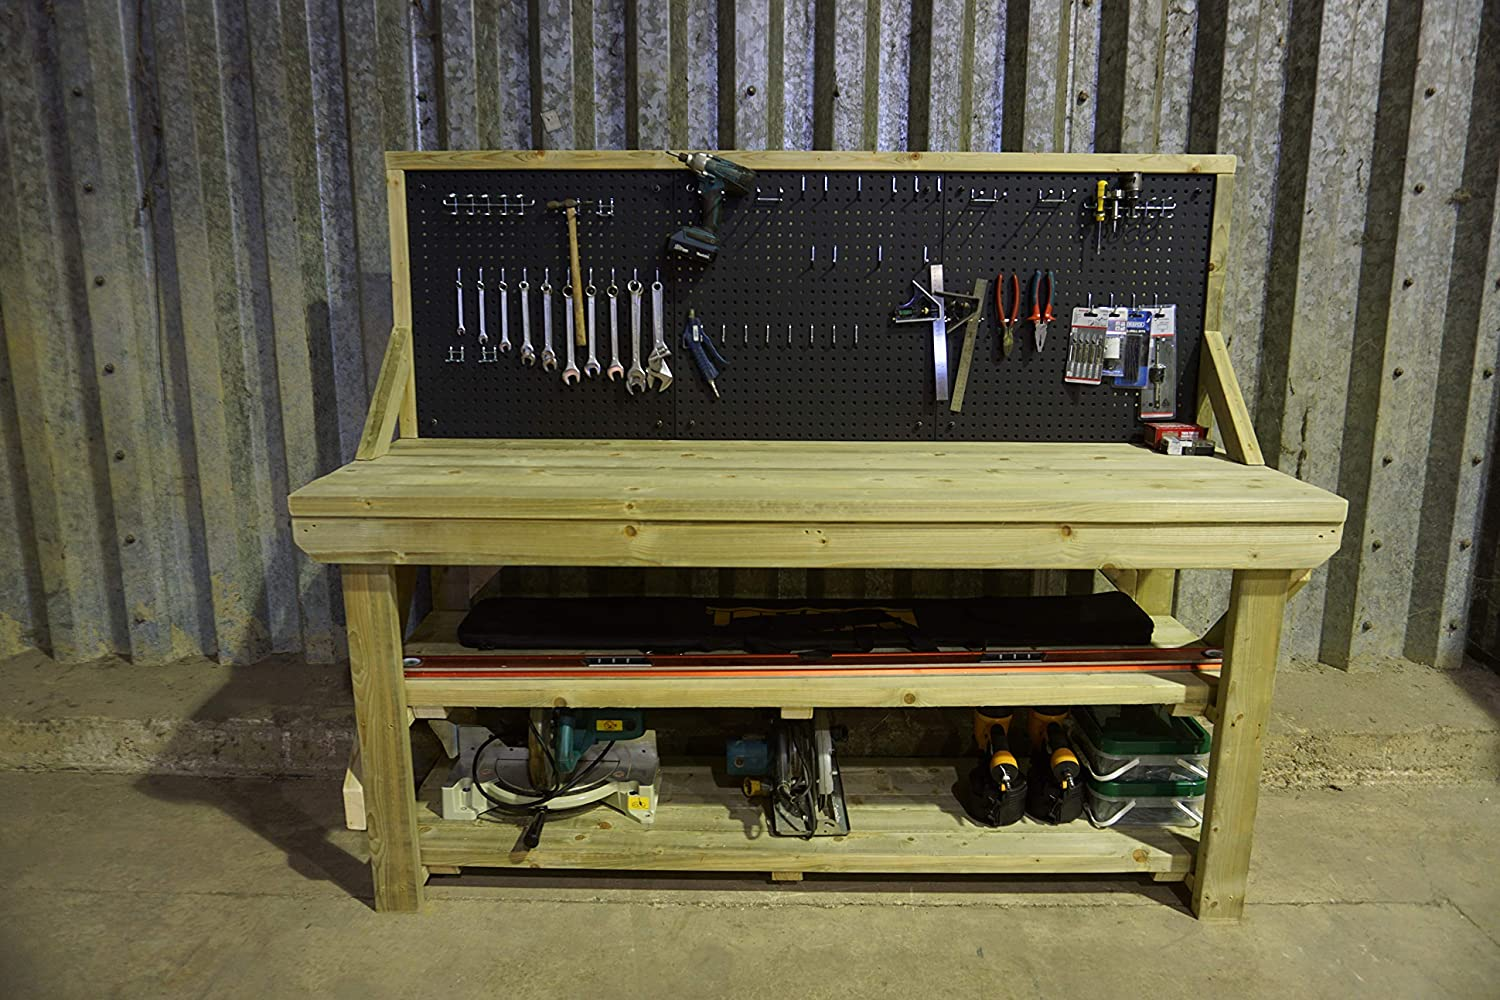 Workbench With Pegboard and Wheels With Brake Castors Pressure Treated 4ft Heavy Duty 46 Piece Peg Kit INCLUDED Handmade Garage Workshop Work Table